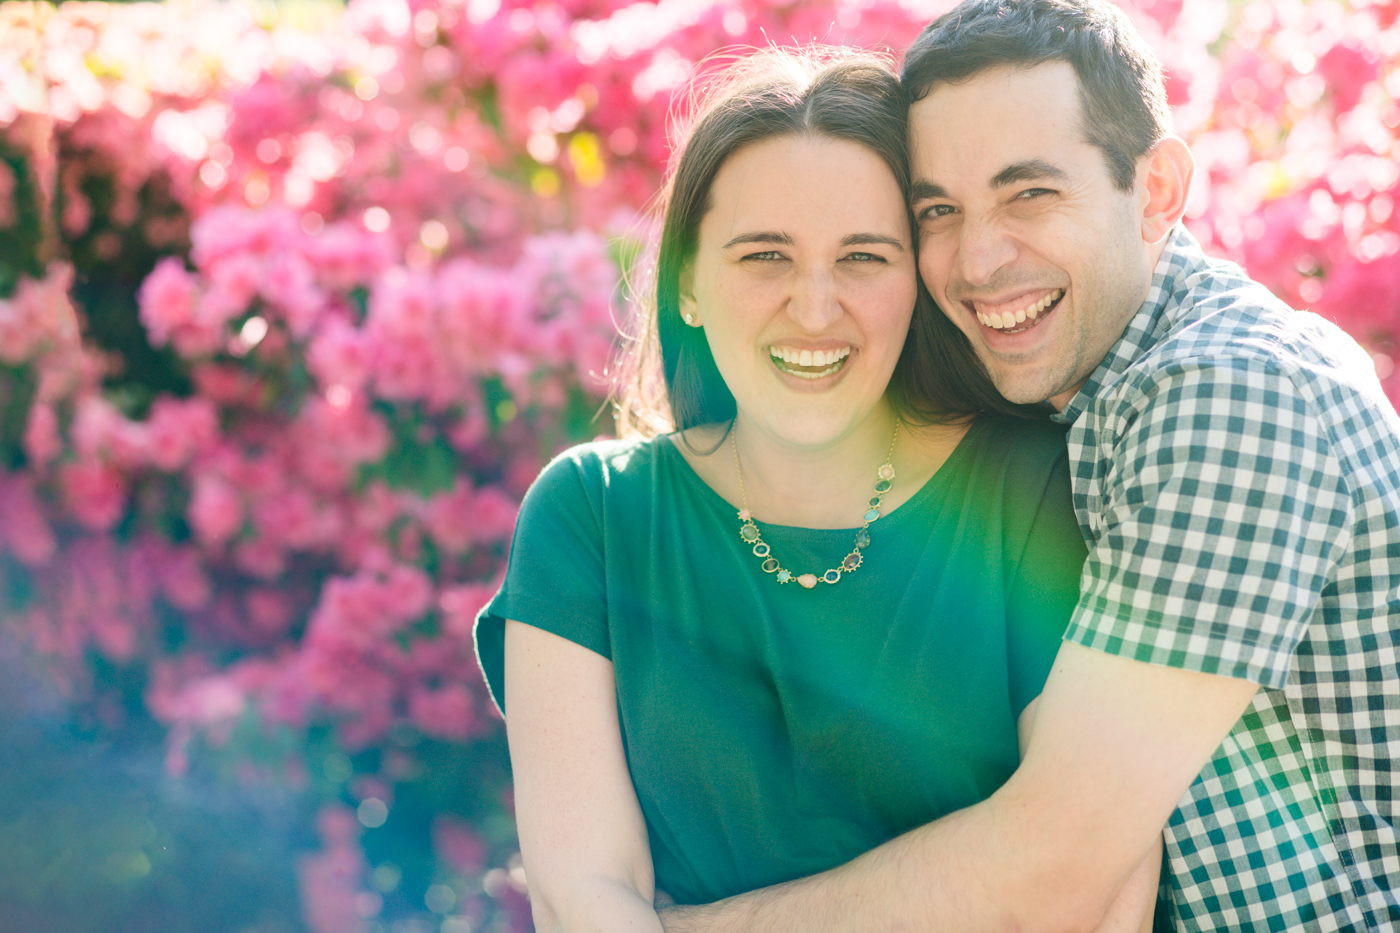 Married couple embracing in the sun by large pink flowers in Atlanta GA Raven Shutley Studios